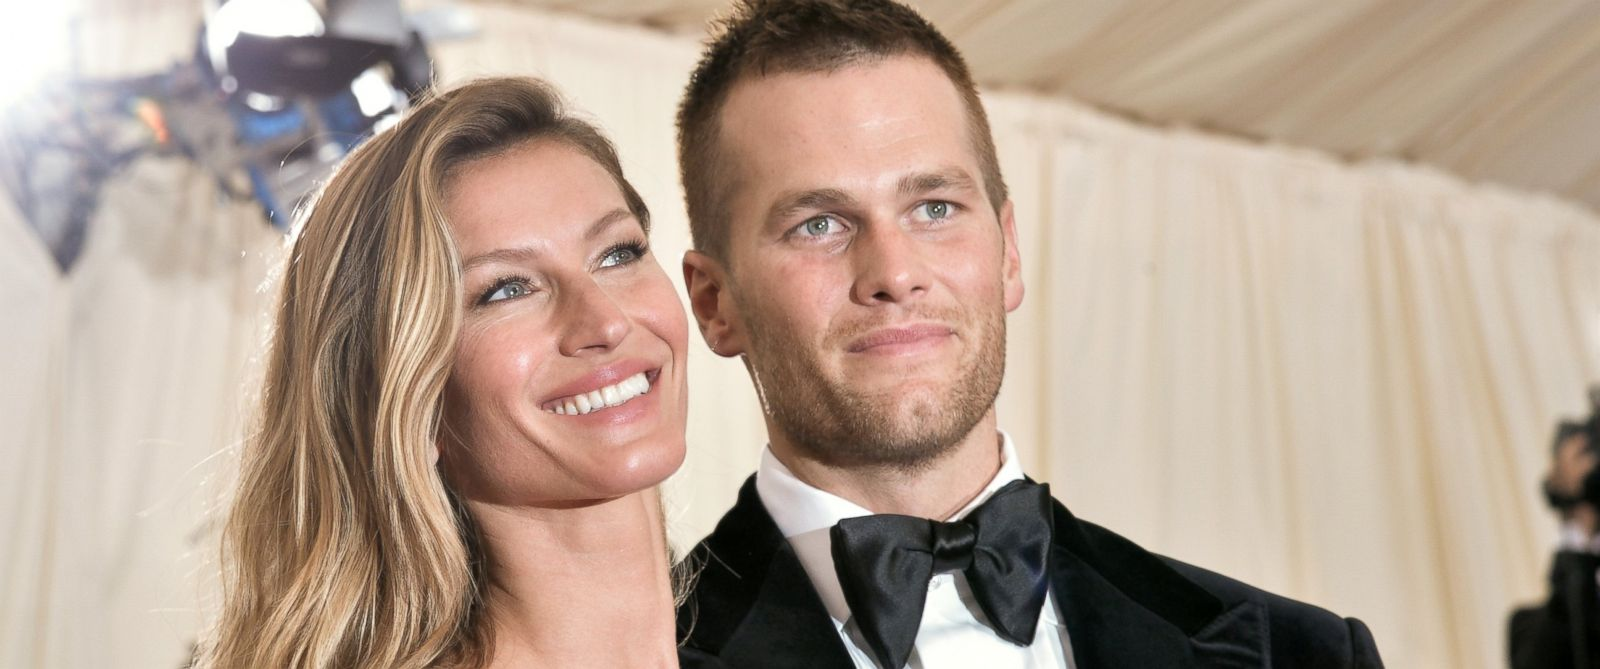 """PHOTO: Gisele Bundchen and Tom Brady attend the """"Charles James: Beyond Fashion"""" Costume Institute Gala at the Metropolitan Museum of Art, May 5, 2014, in New York City."""